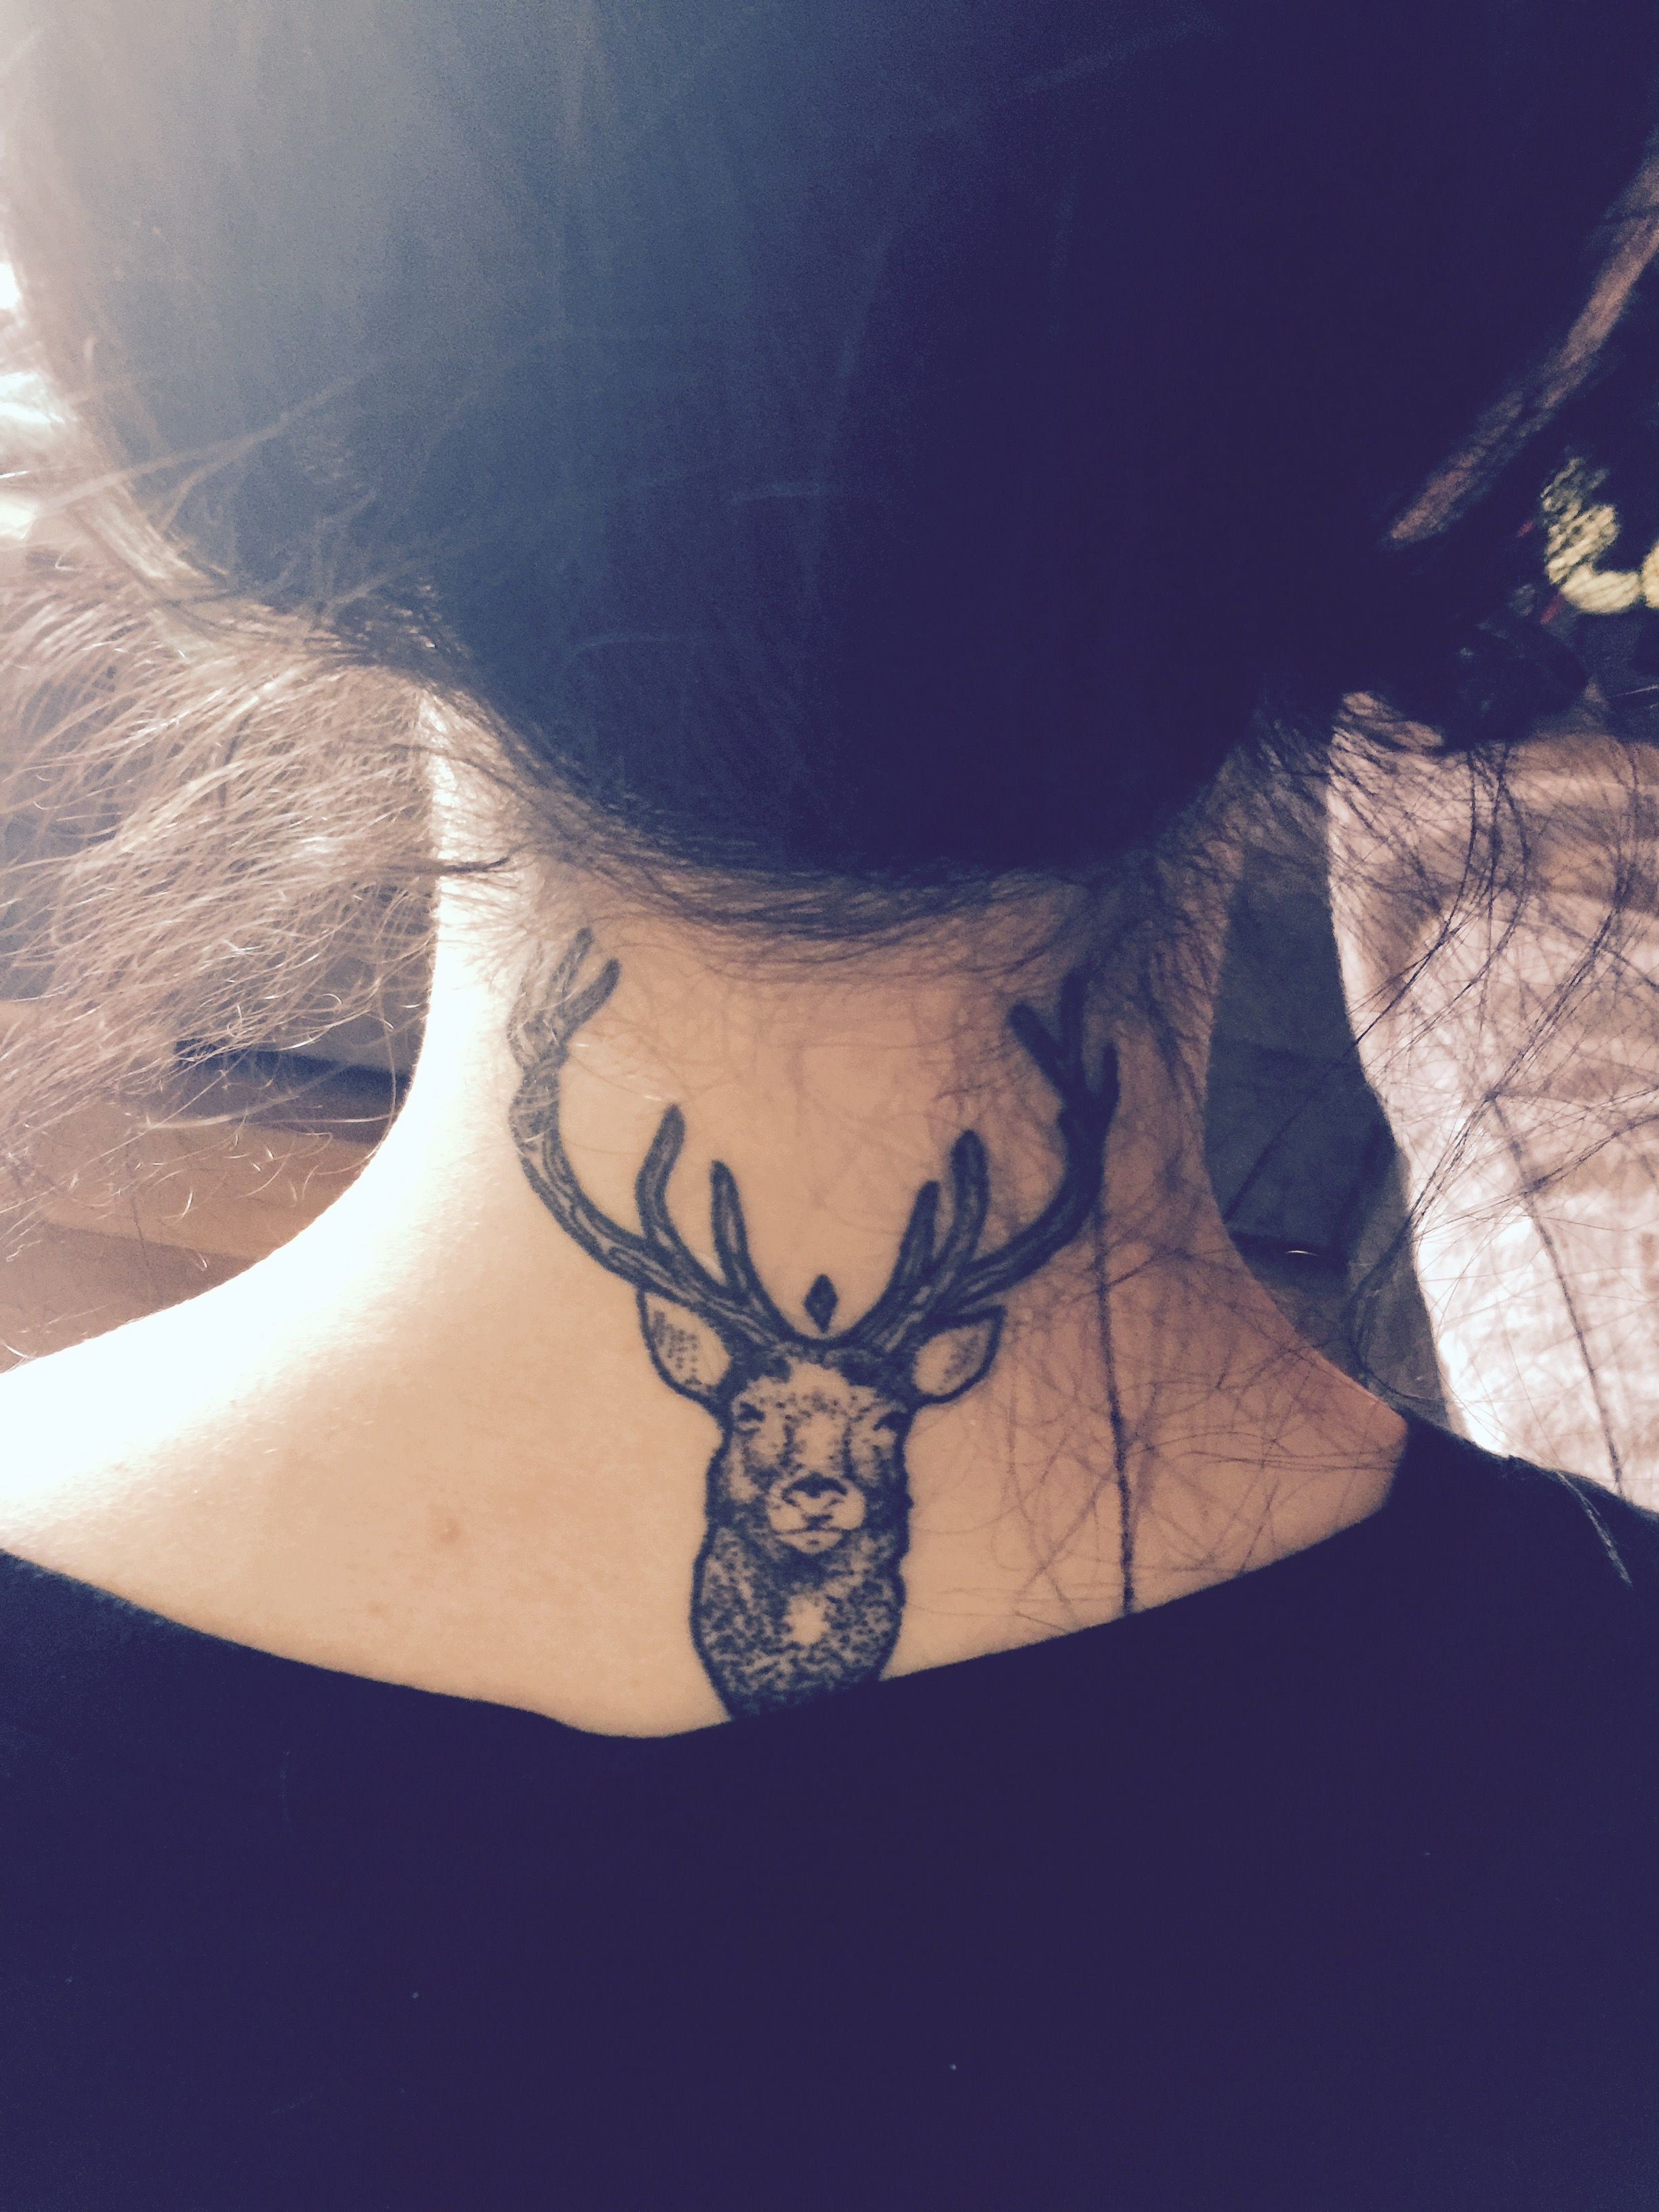 necked tattoo of women